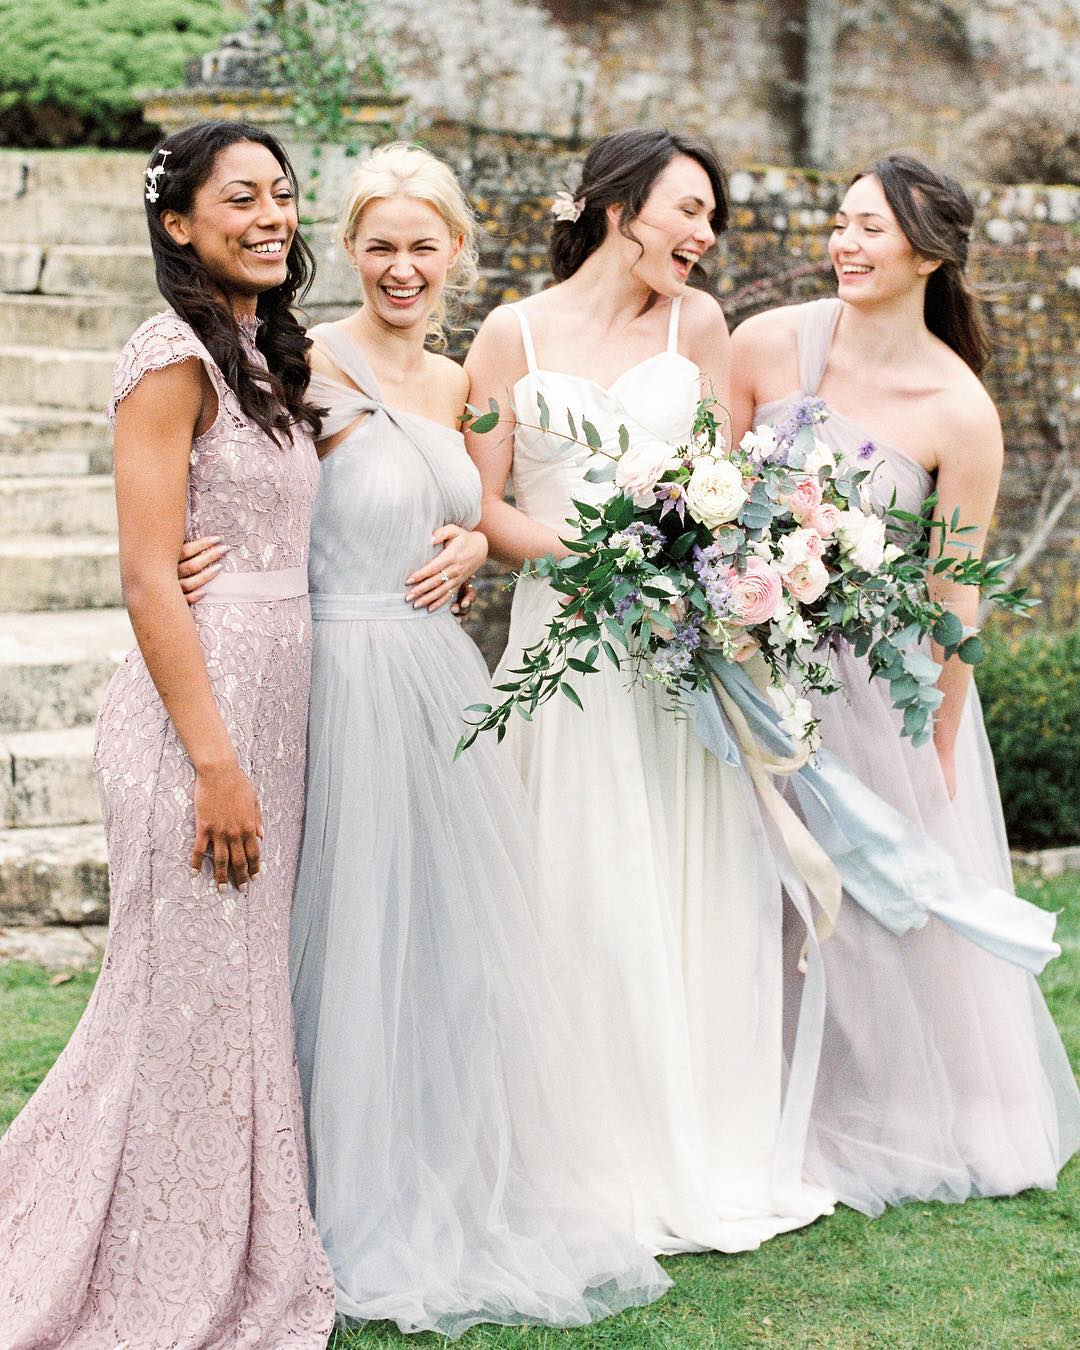 thth_bridesmaids-1